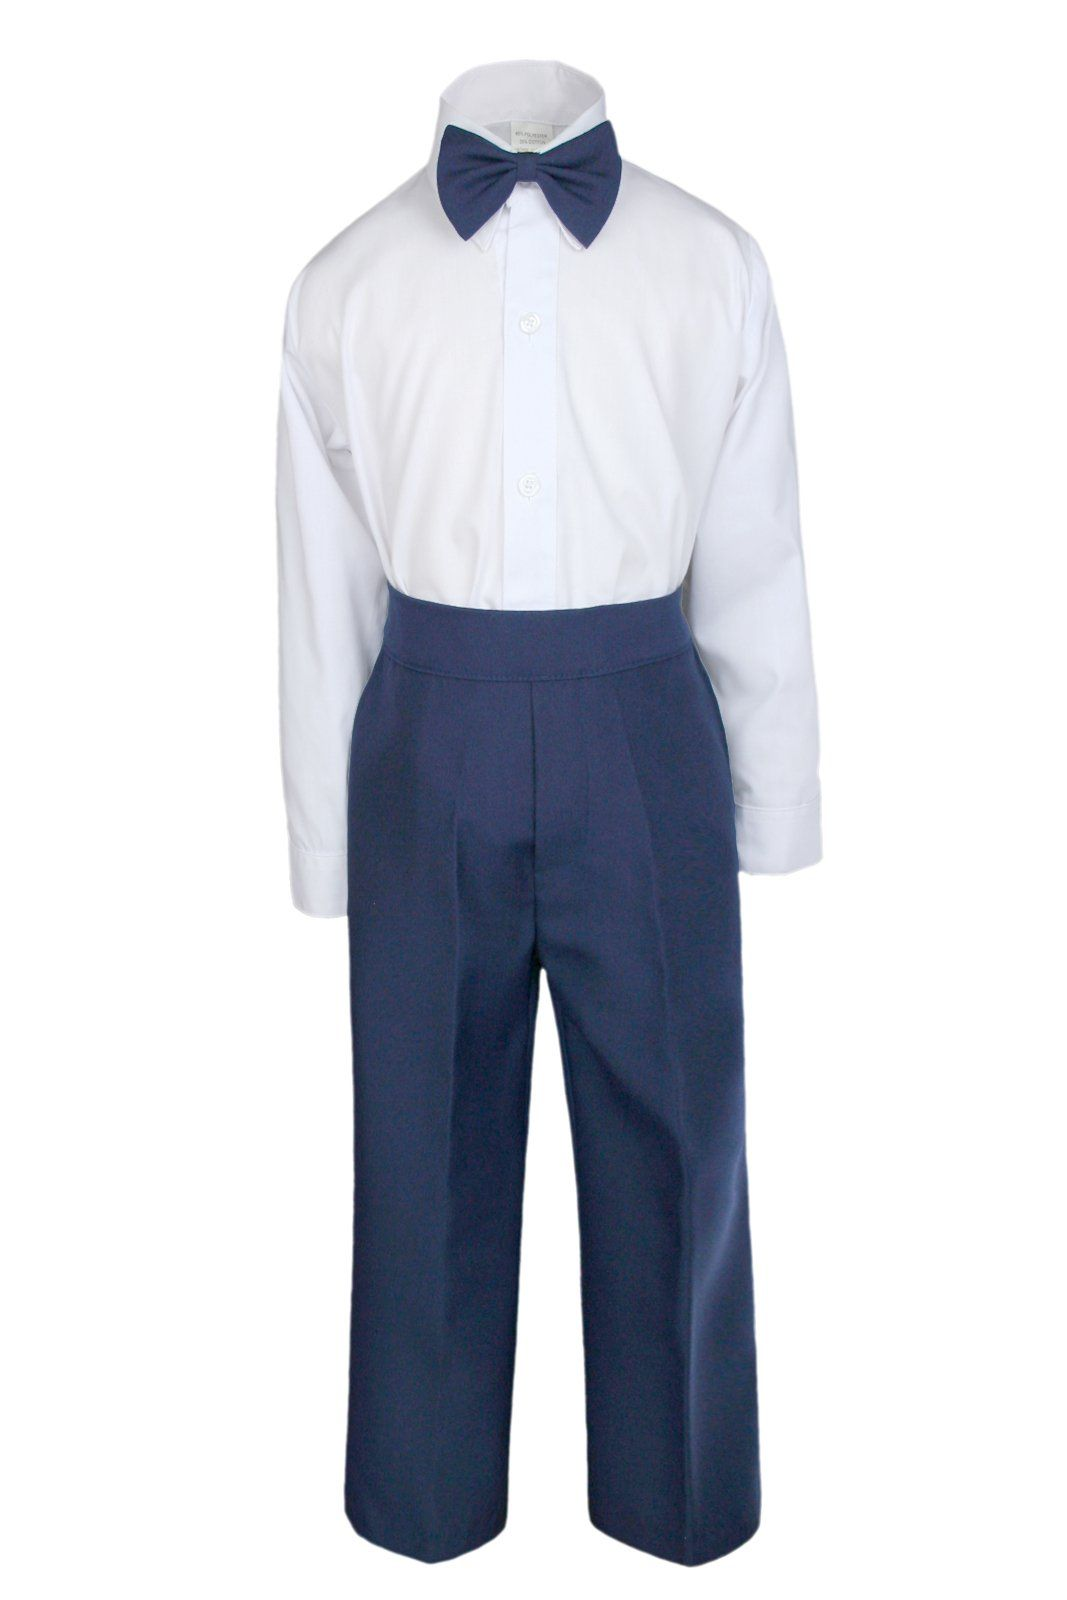 Sailor captain suit for boy outfits from new born to years old t